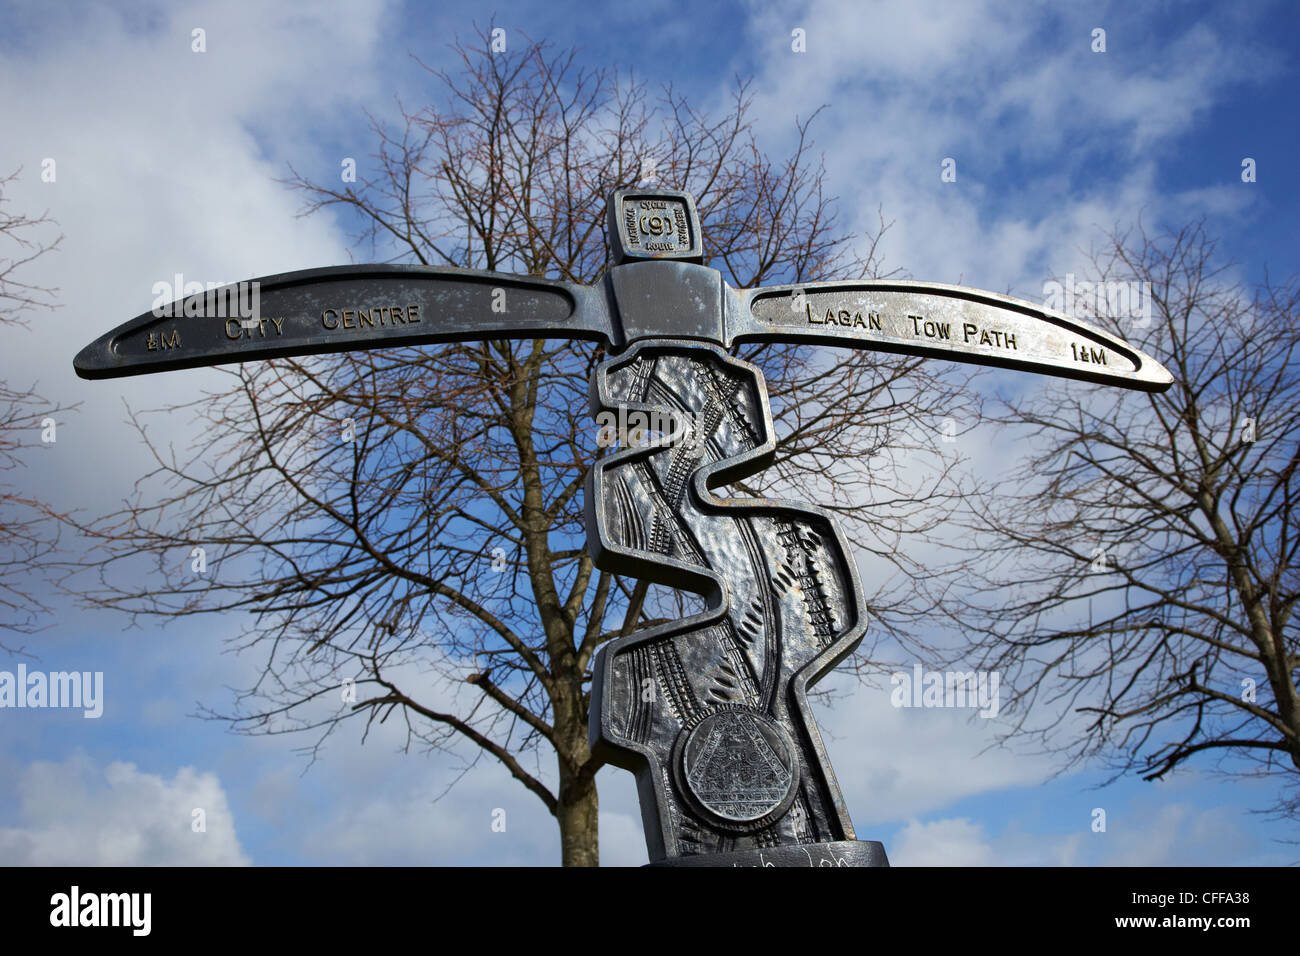 national cycle route 9 at the gasworks site between Belfast city centre and the lagan towpath Northern Ireland UK - Stock Image